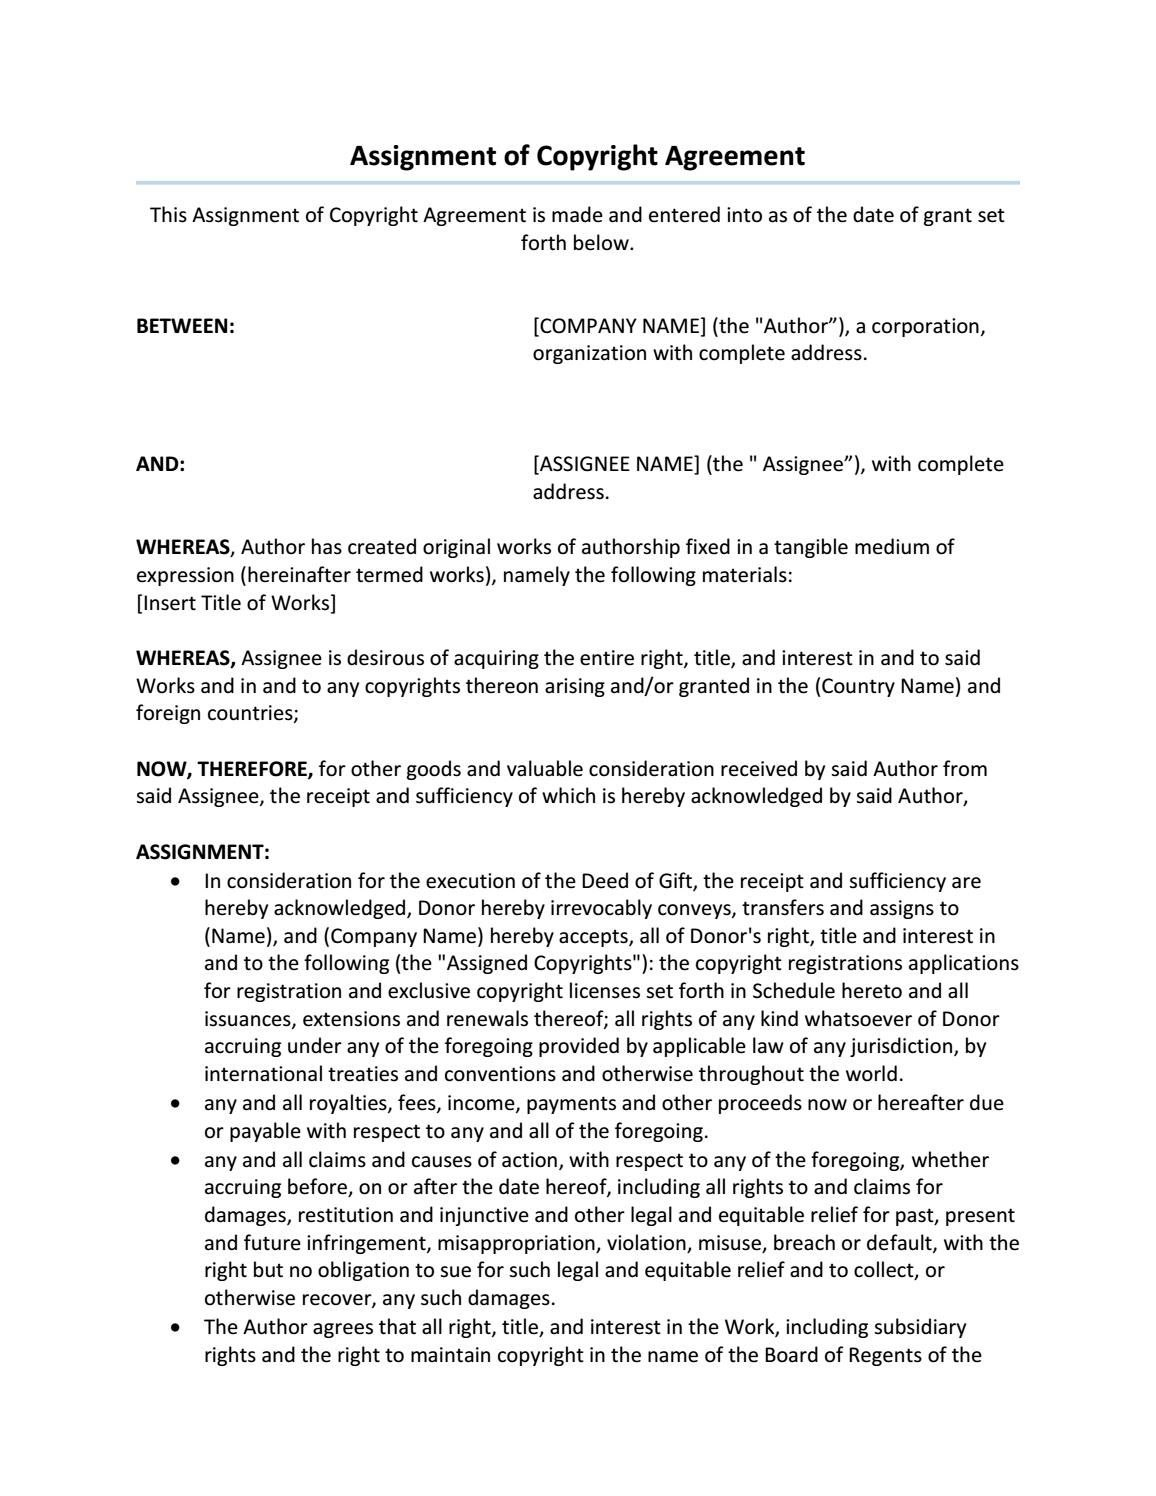 Assignment Of Copyright Agreement  Agreement Templates  Words Throughout Copyright Assignment Agreement Template